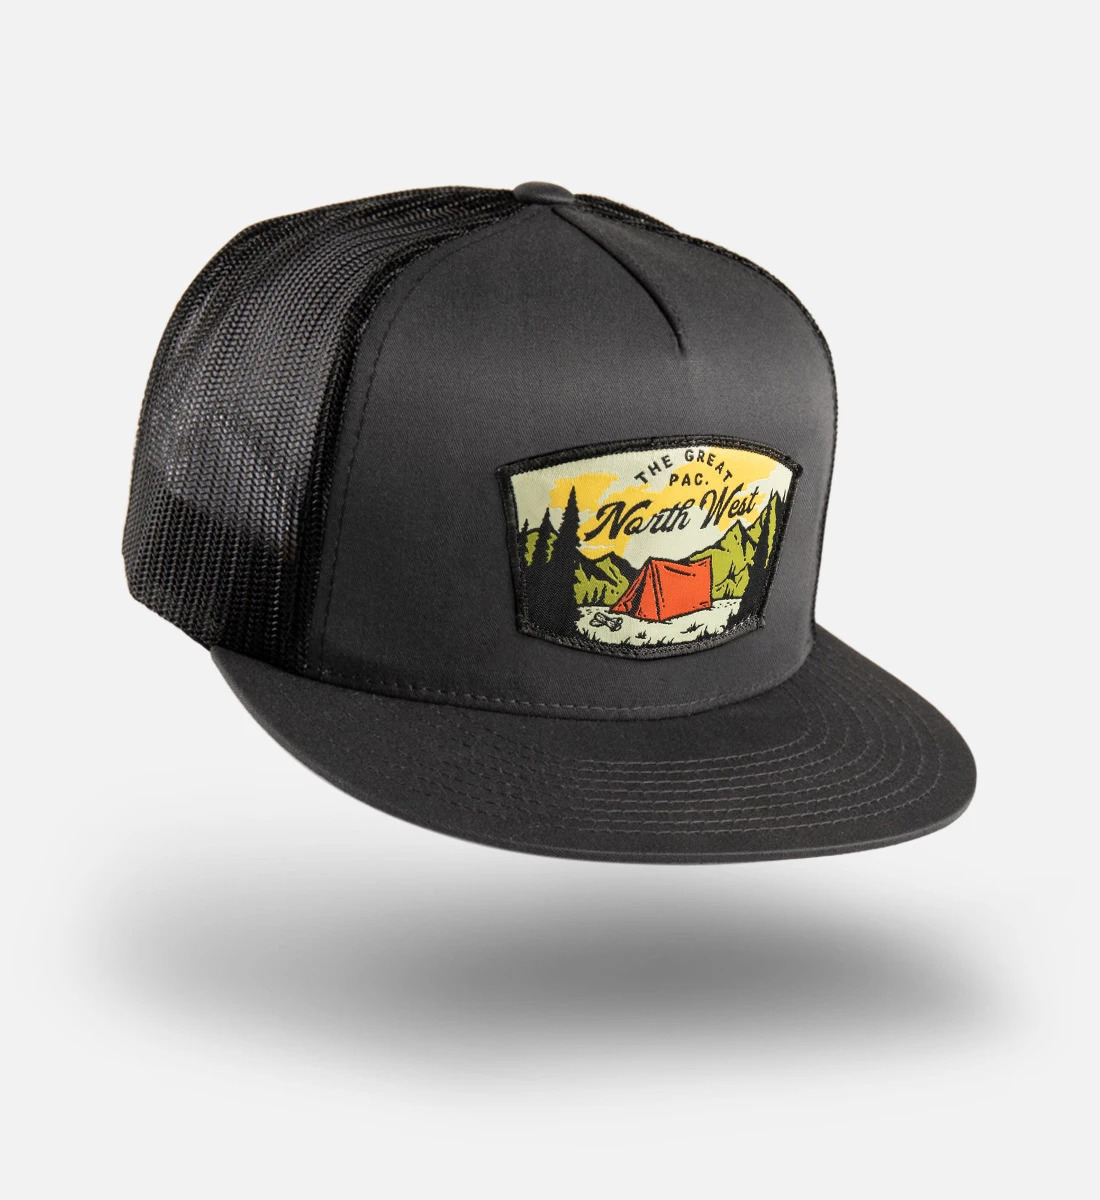 Custom Woven Patch Hat 2